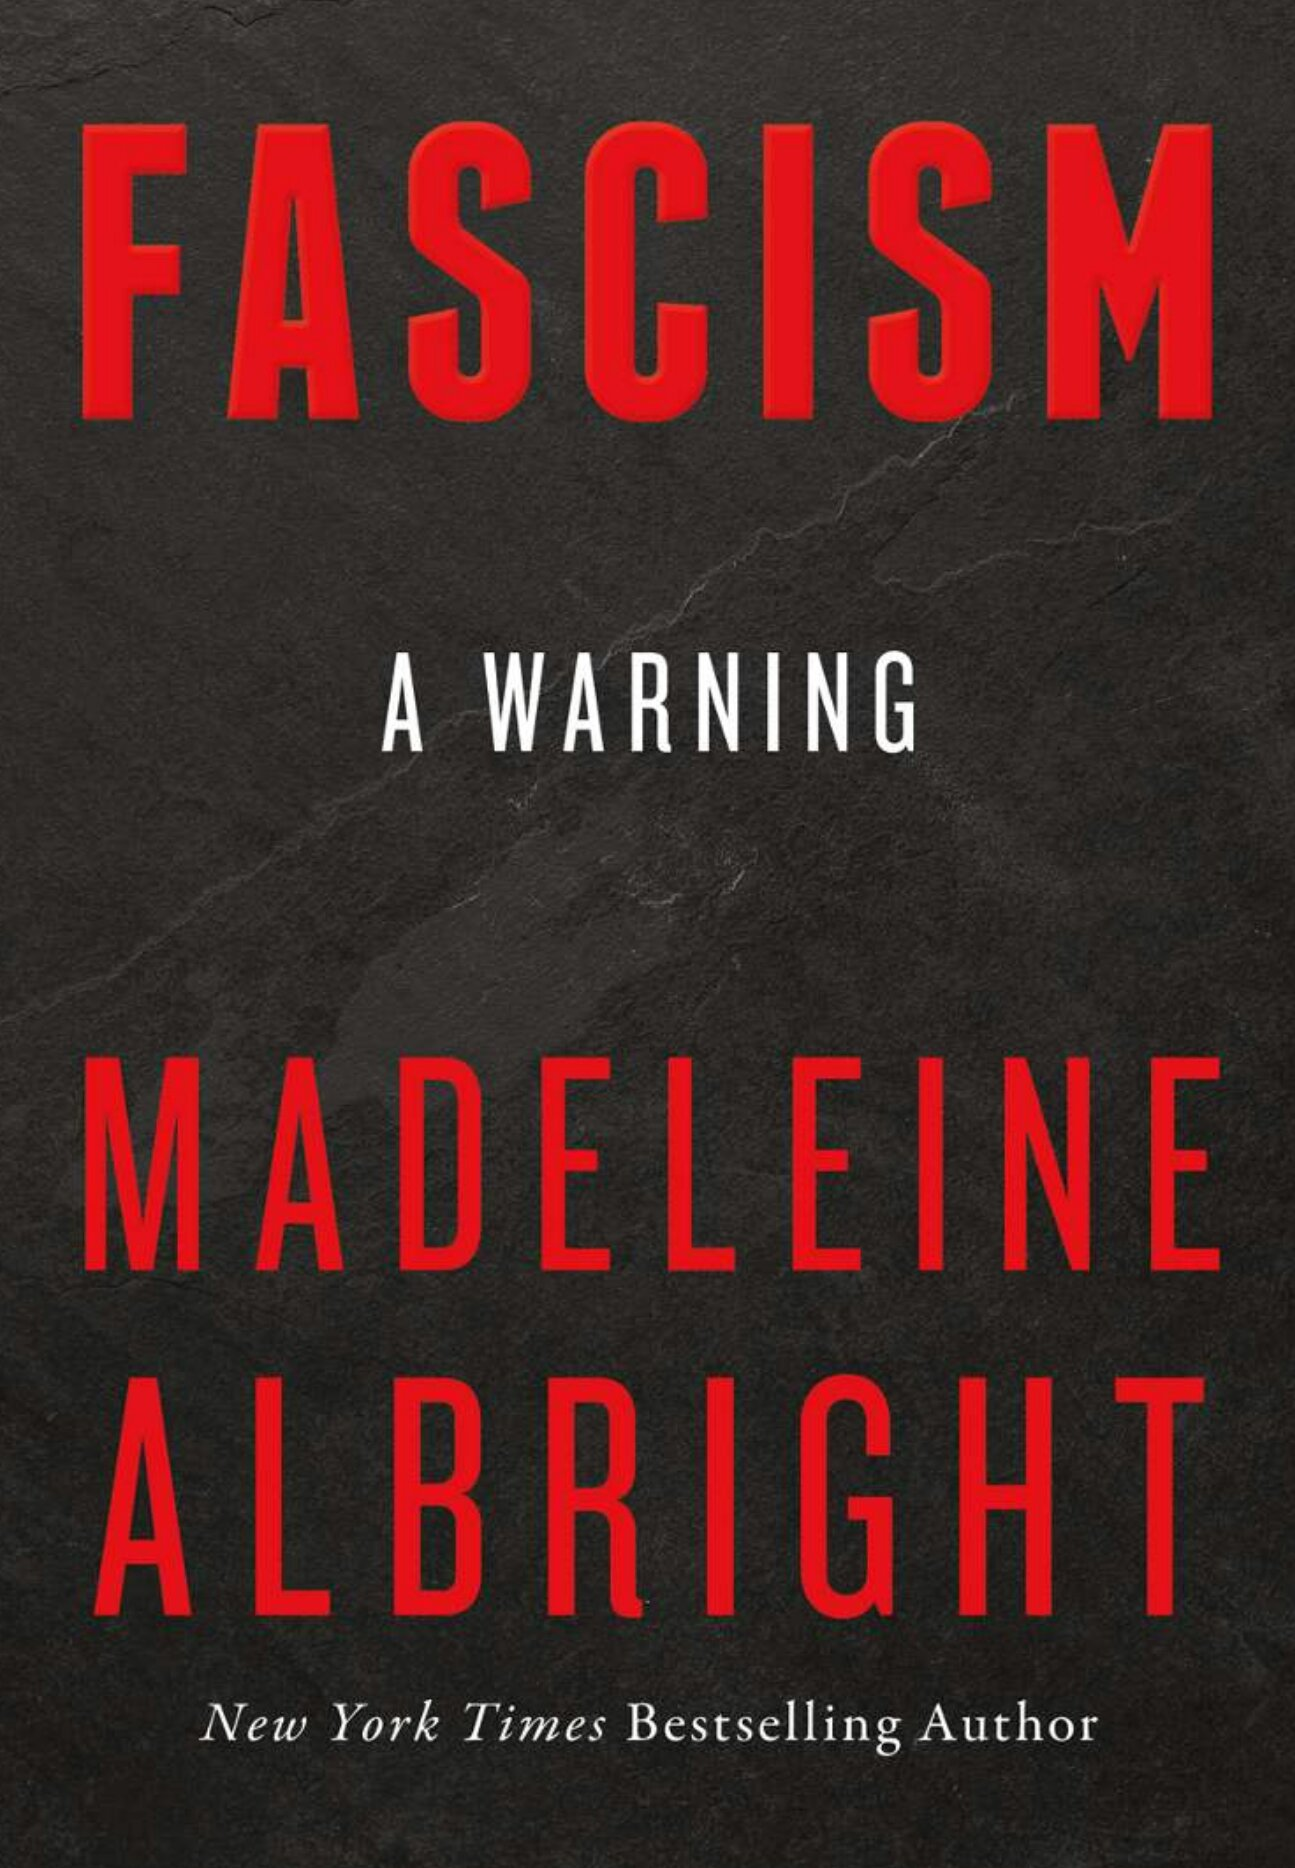 FASCISM, A WARNING – MADELEINE ALBRIGHT. | TPPA = CRISIS